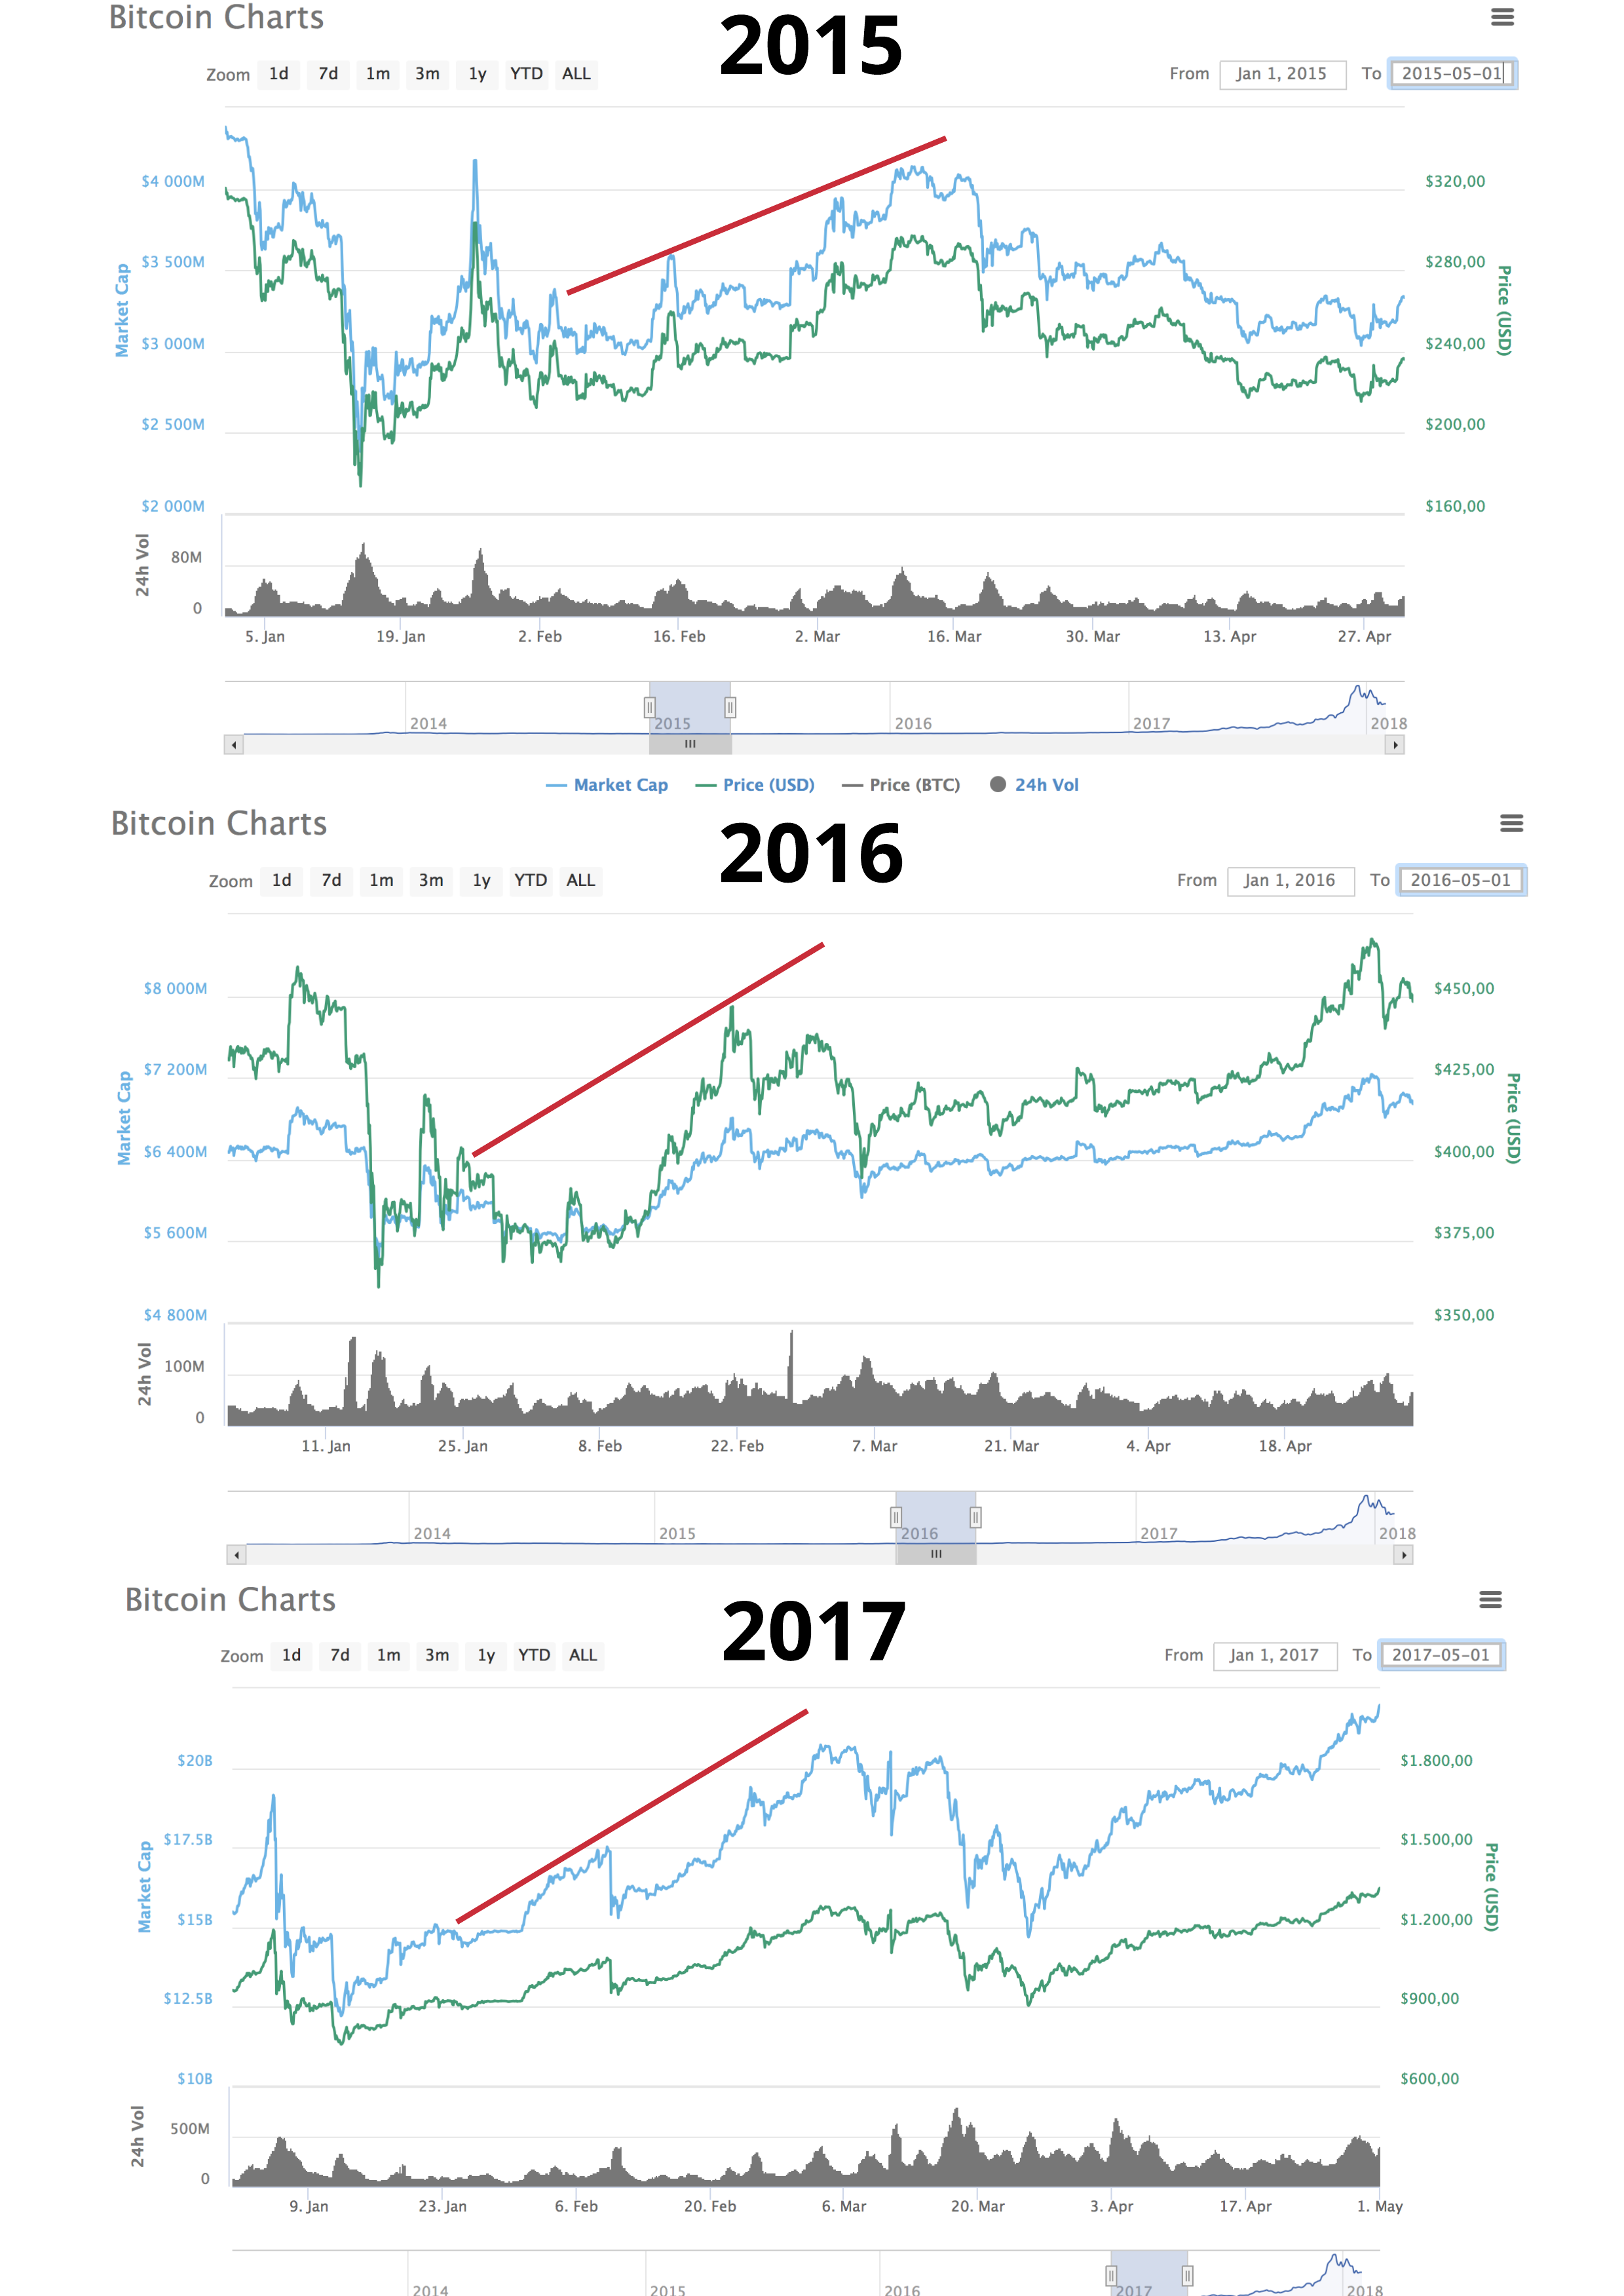 btc-trends.png